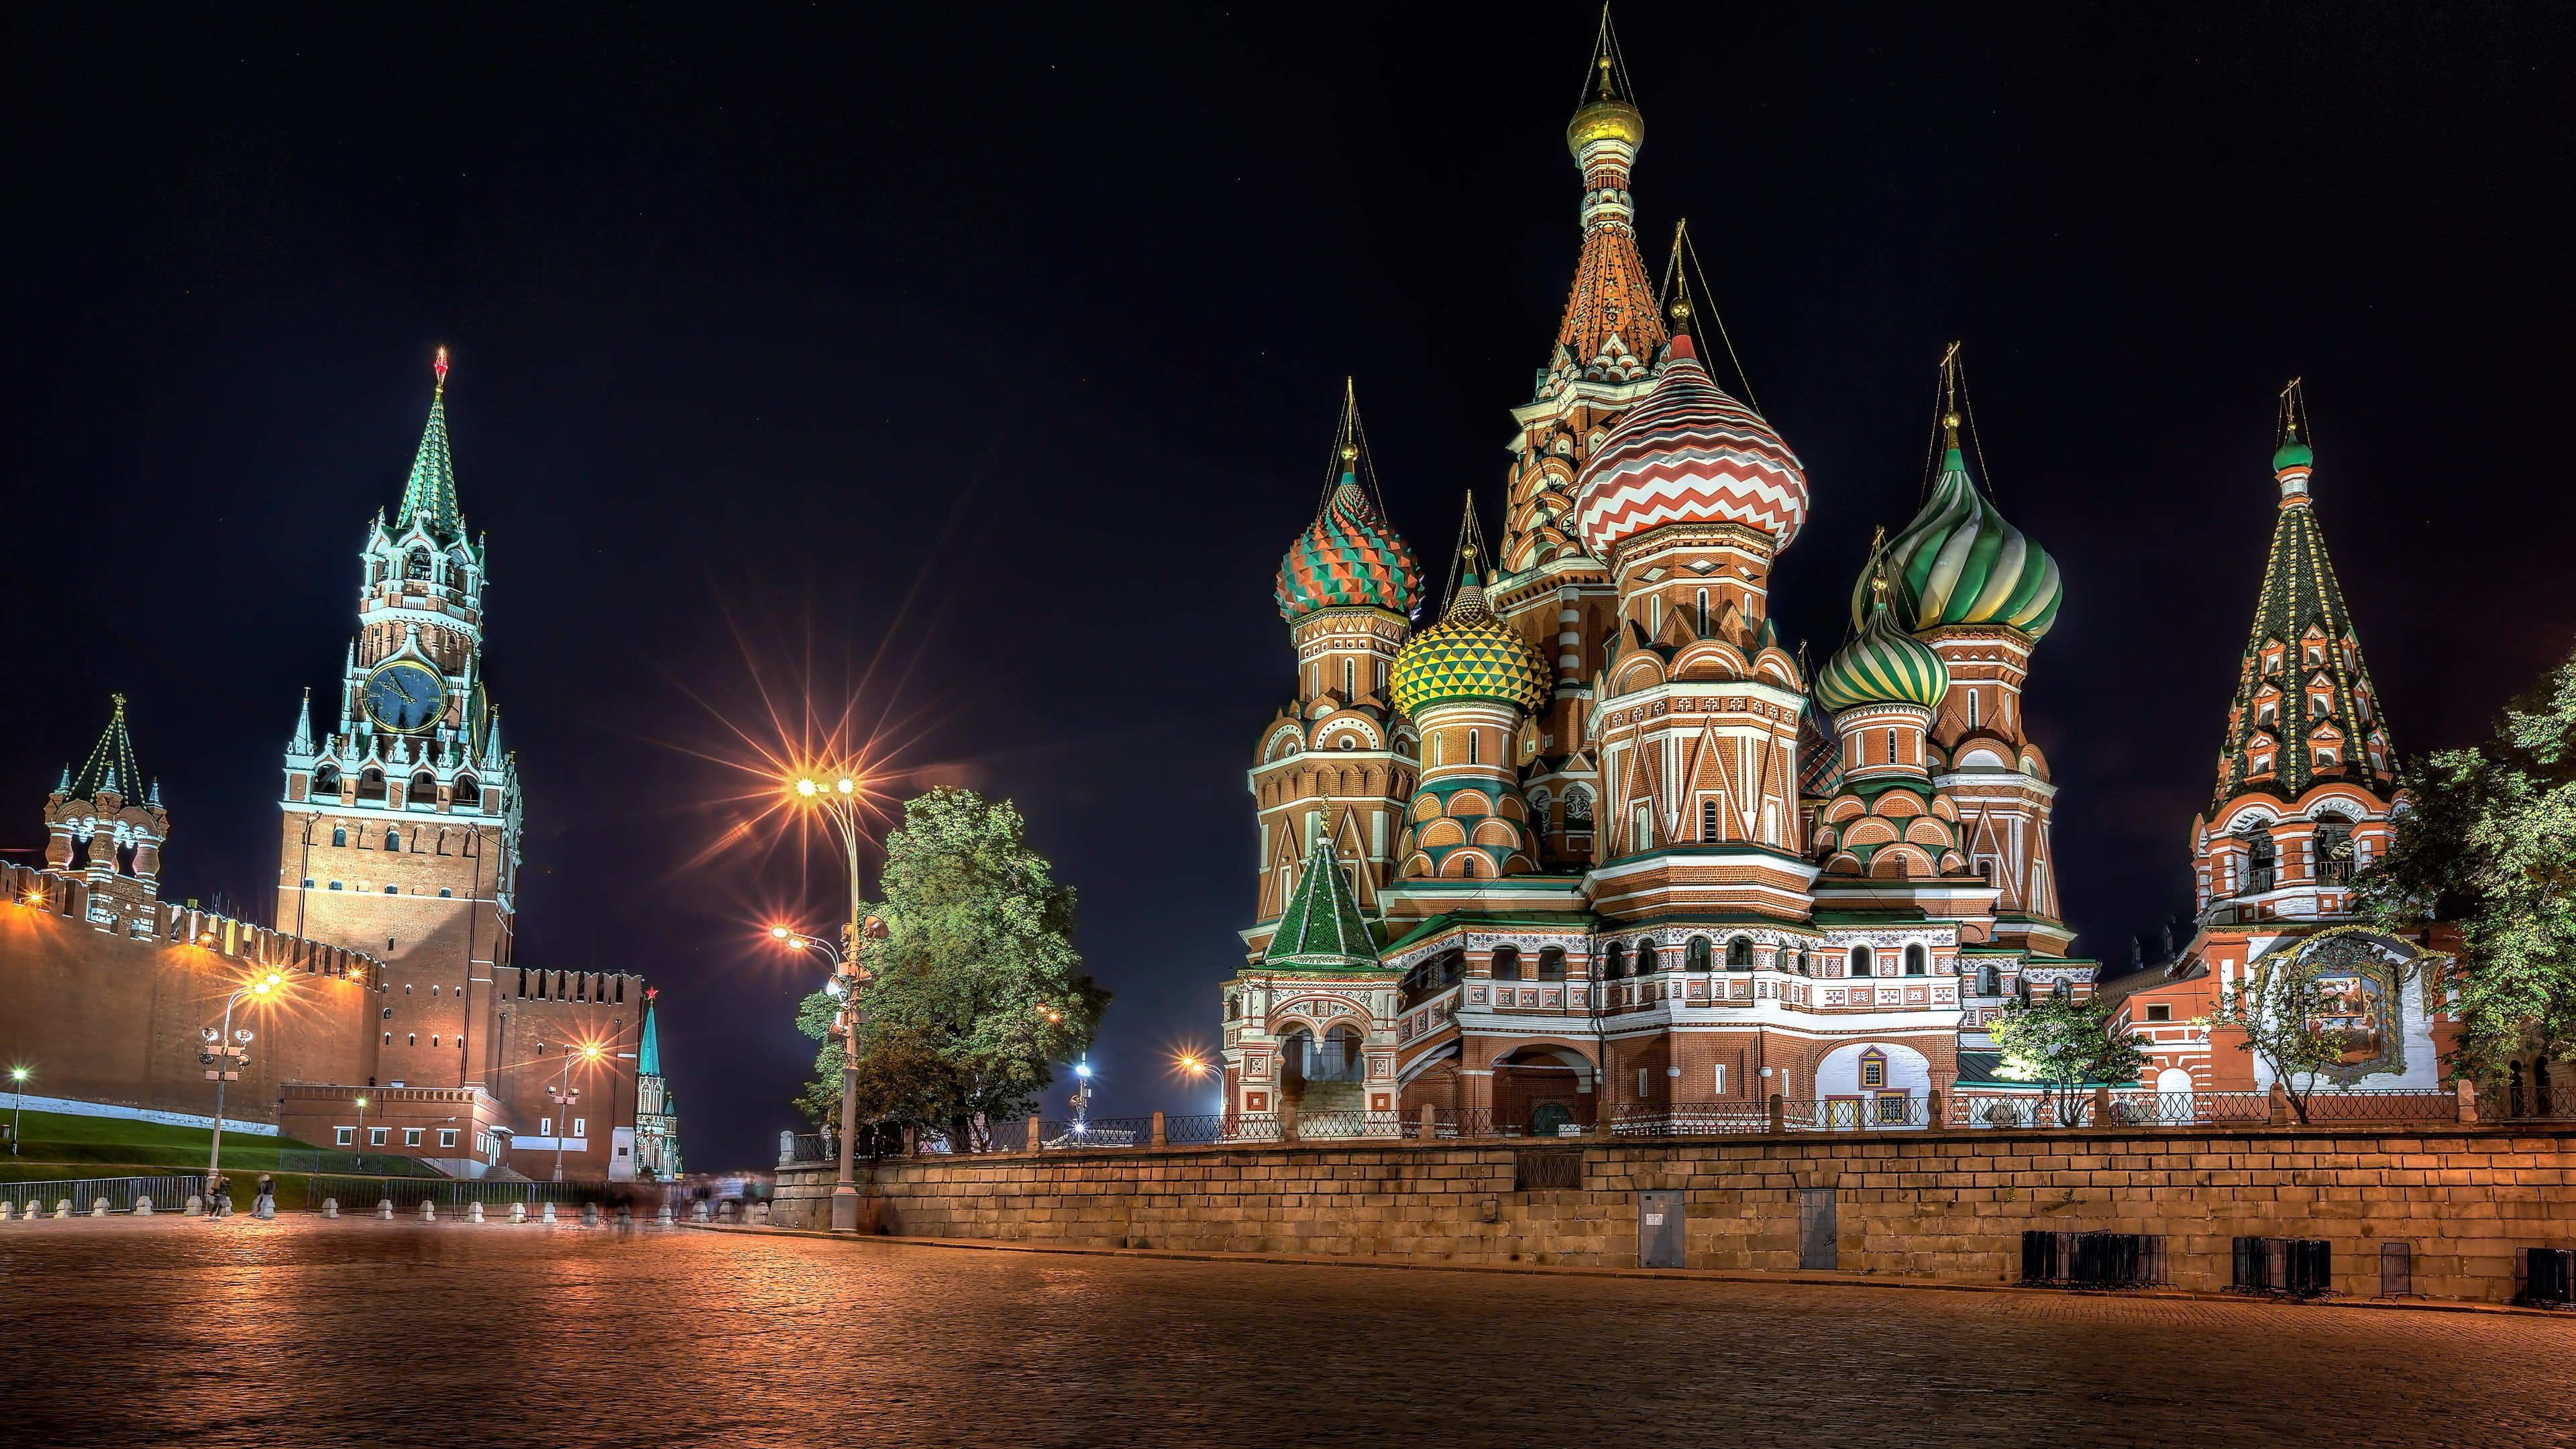 Saint Basil S Cathedral Russia Night Moscow The Kremlin St Basil S Cathedral Russia Red Square 4k Wallpap St Basils Cathedral Russia Landscape Cathedral